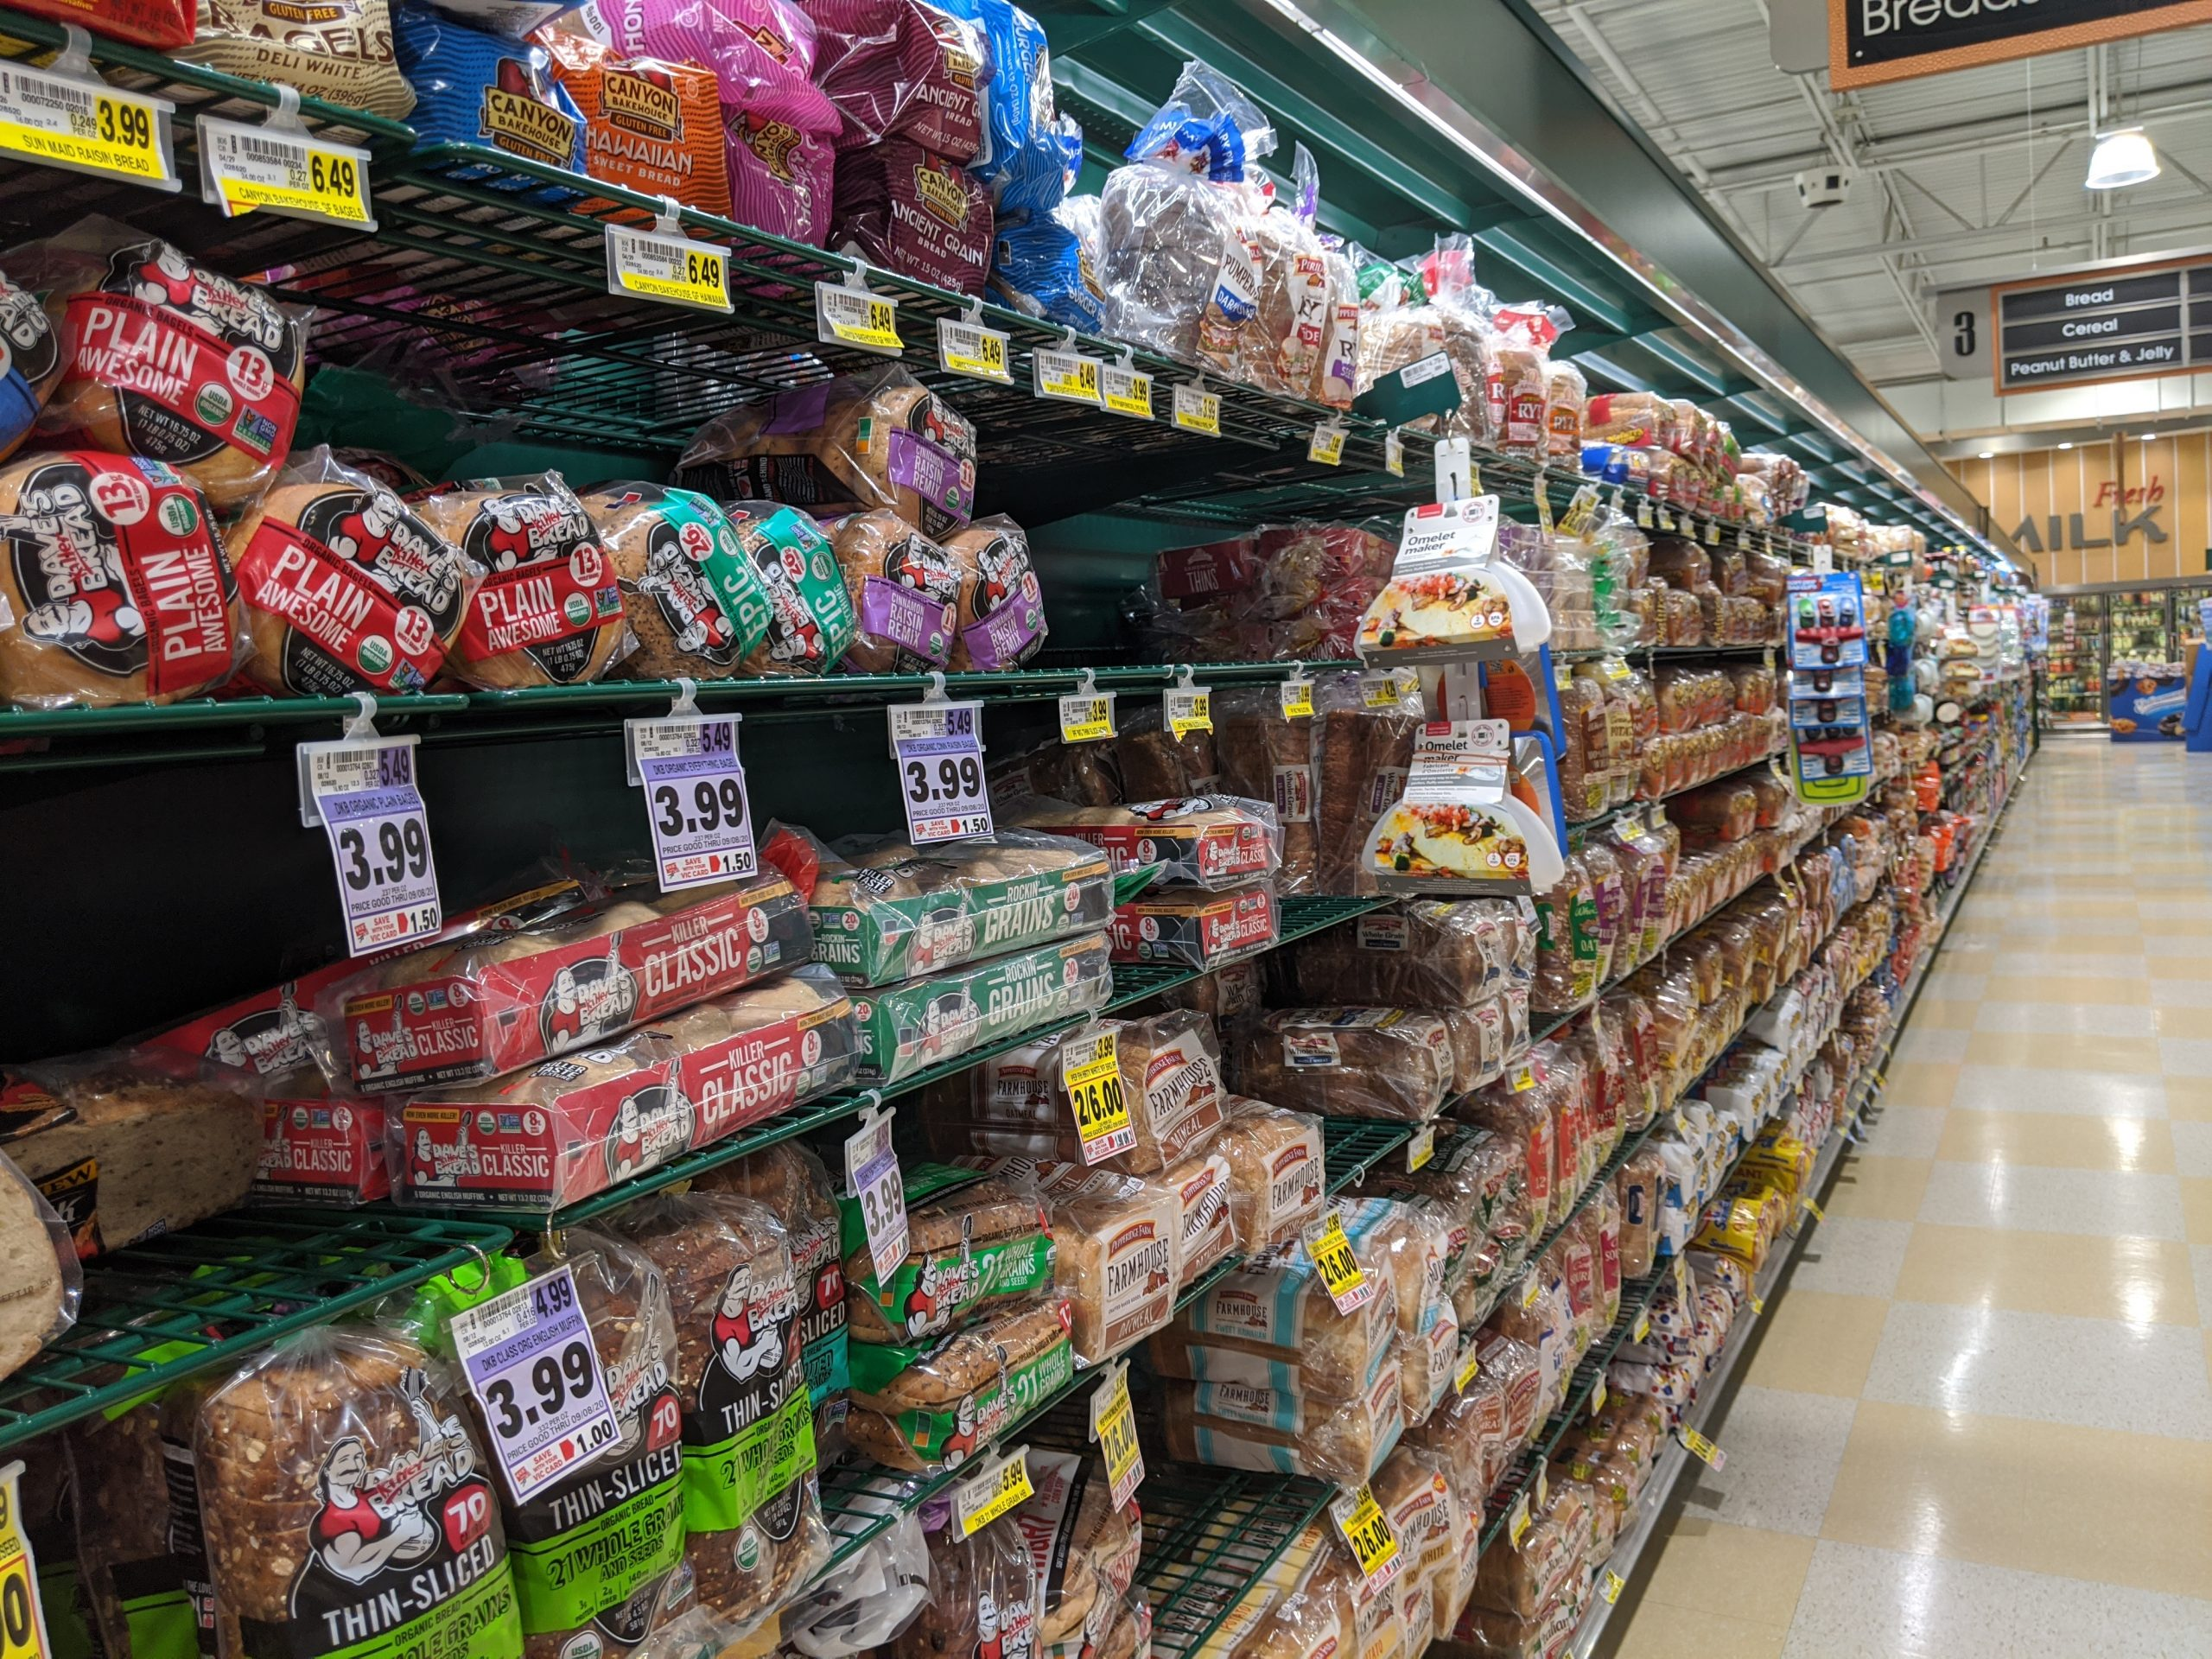 picture of harris teeter bread aisle showing the overwhelming amount of bread options